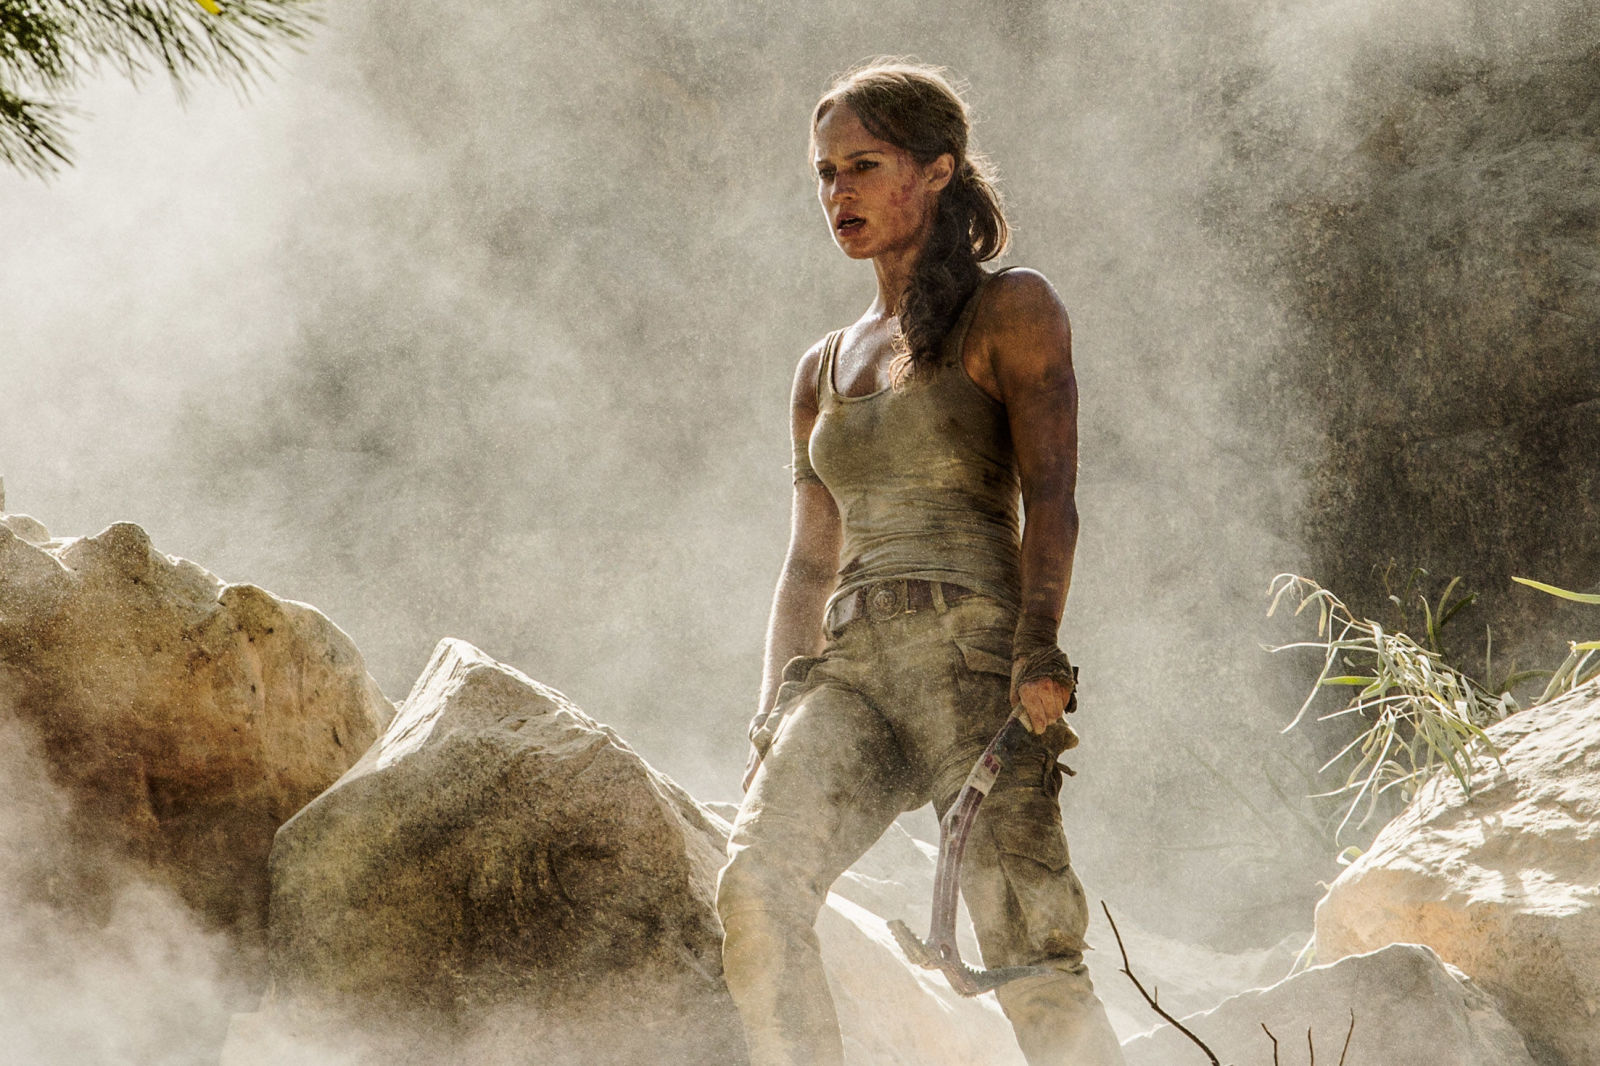 First Official Images Of Alicia Vikander As Tomb Raider's Lara Croft